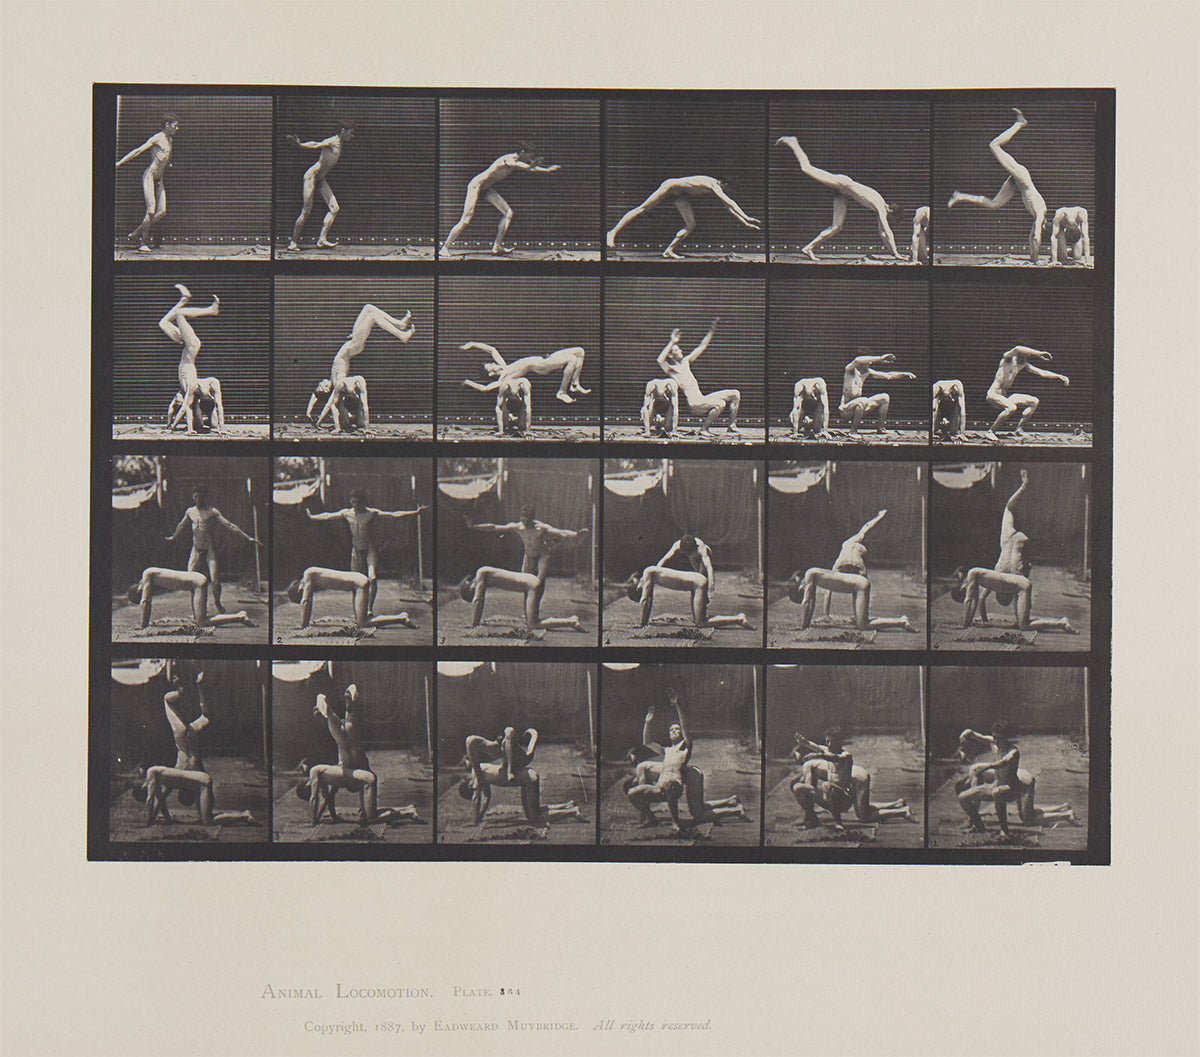 Eadweard Muybridge Animal Location plate 364